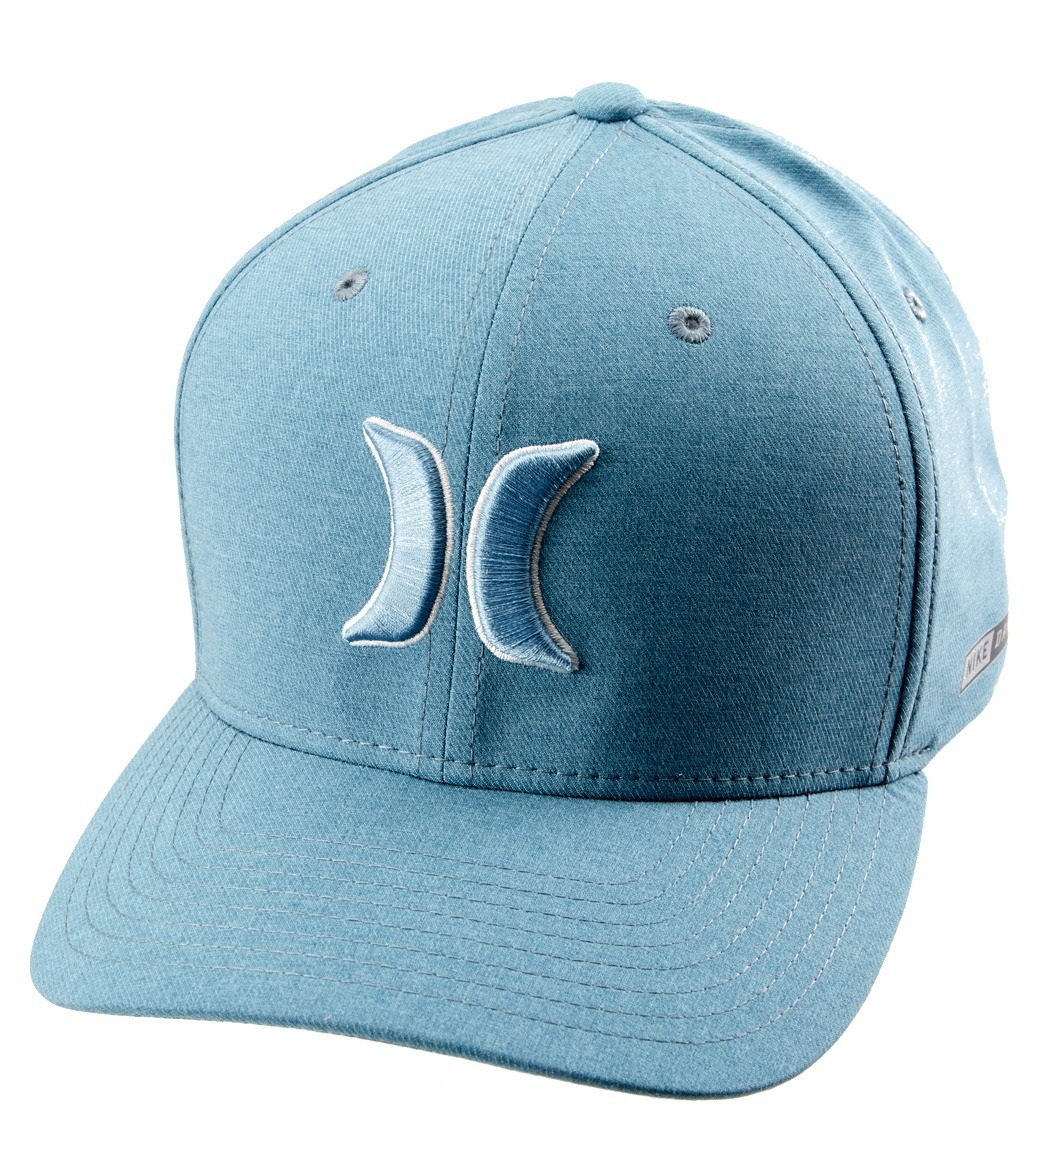 the latest 35732 590bb ... Hurley Men s Dri-Fit Heather Hat. Share